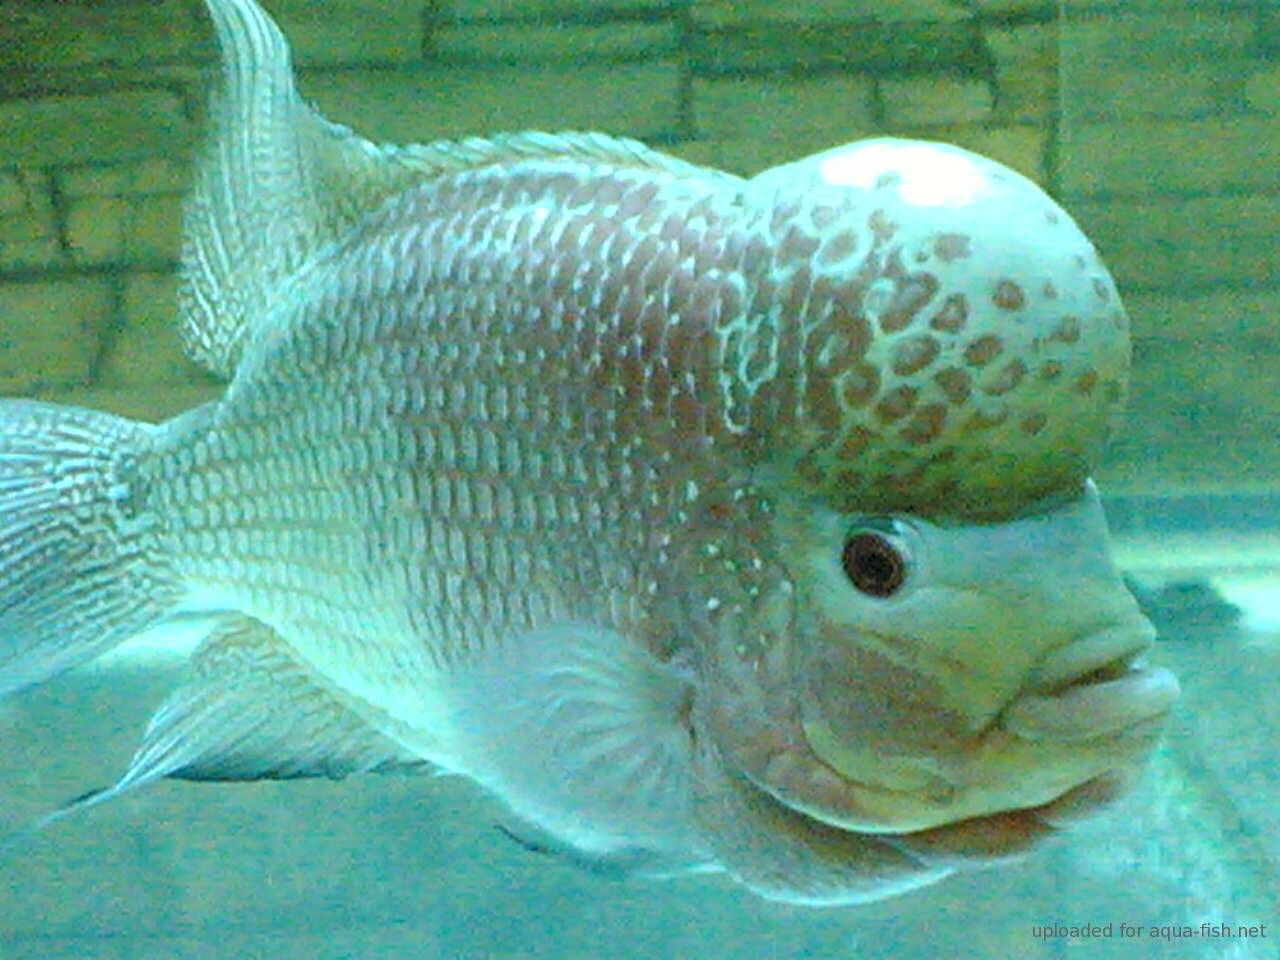 Flowerhorn The Hybrid Cichlids How To Know Male Or Female -4329